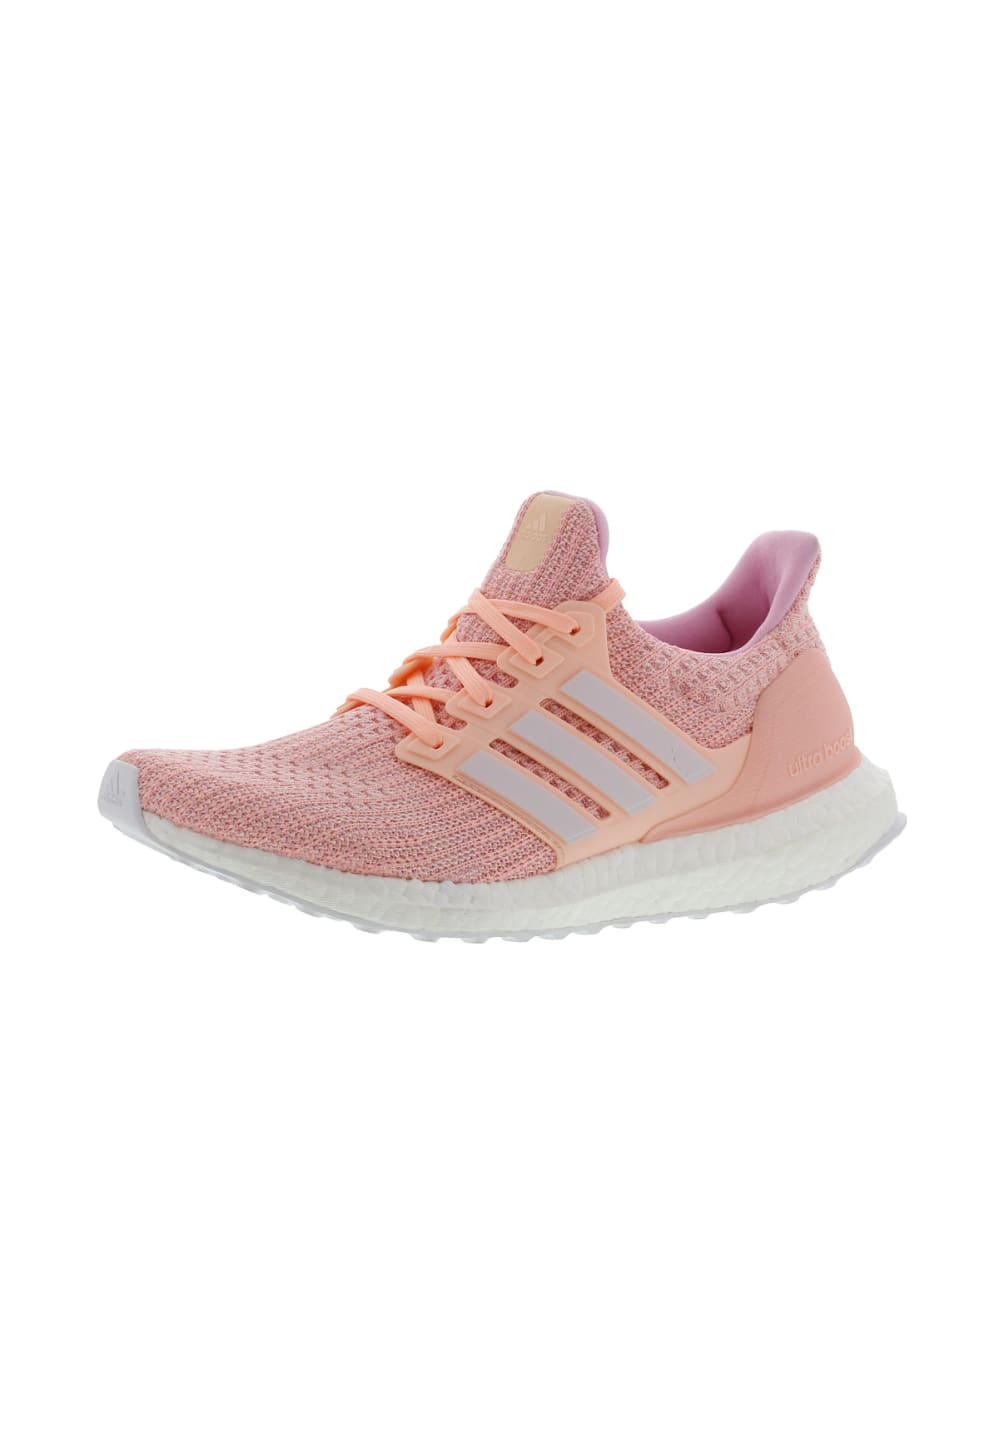 Chaussures Femme Adidas Running Pour Ultra Rose Boost m0OvwN8n